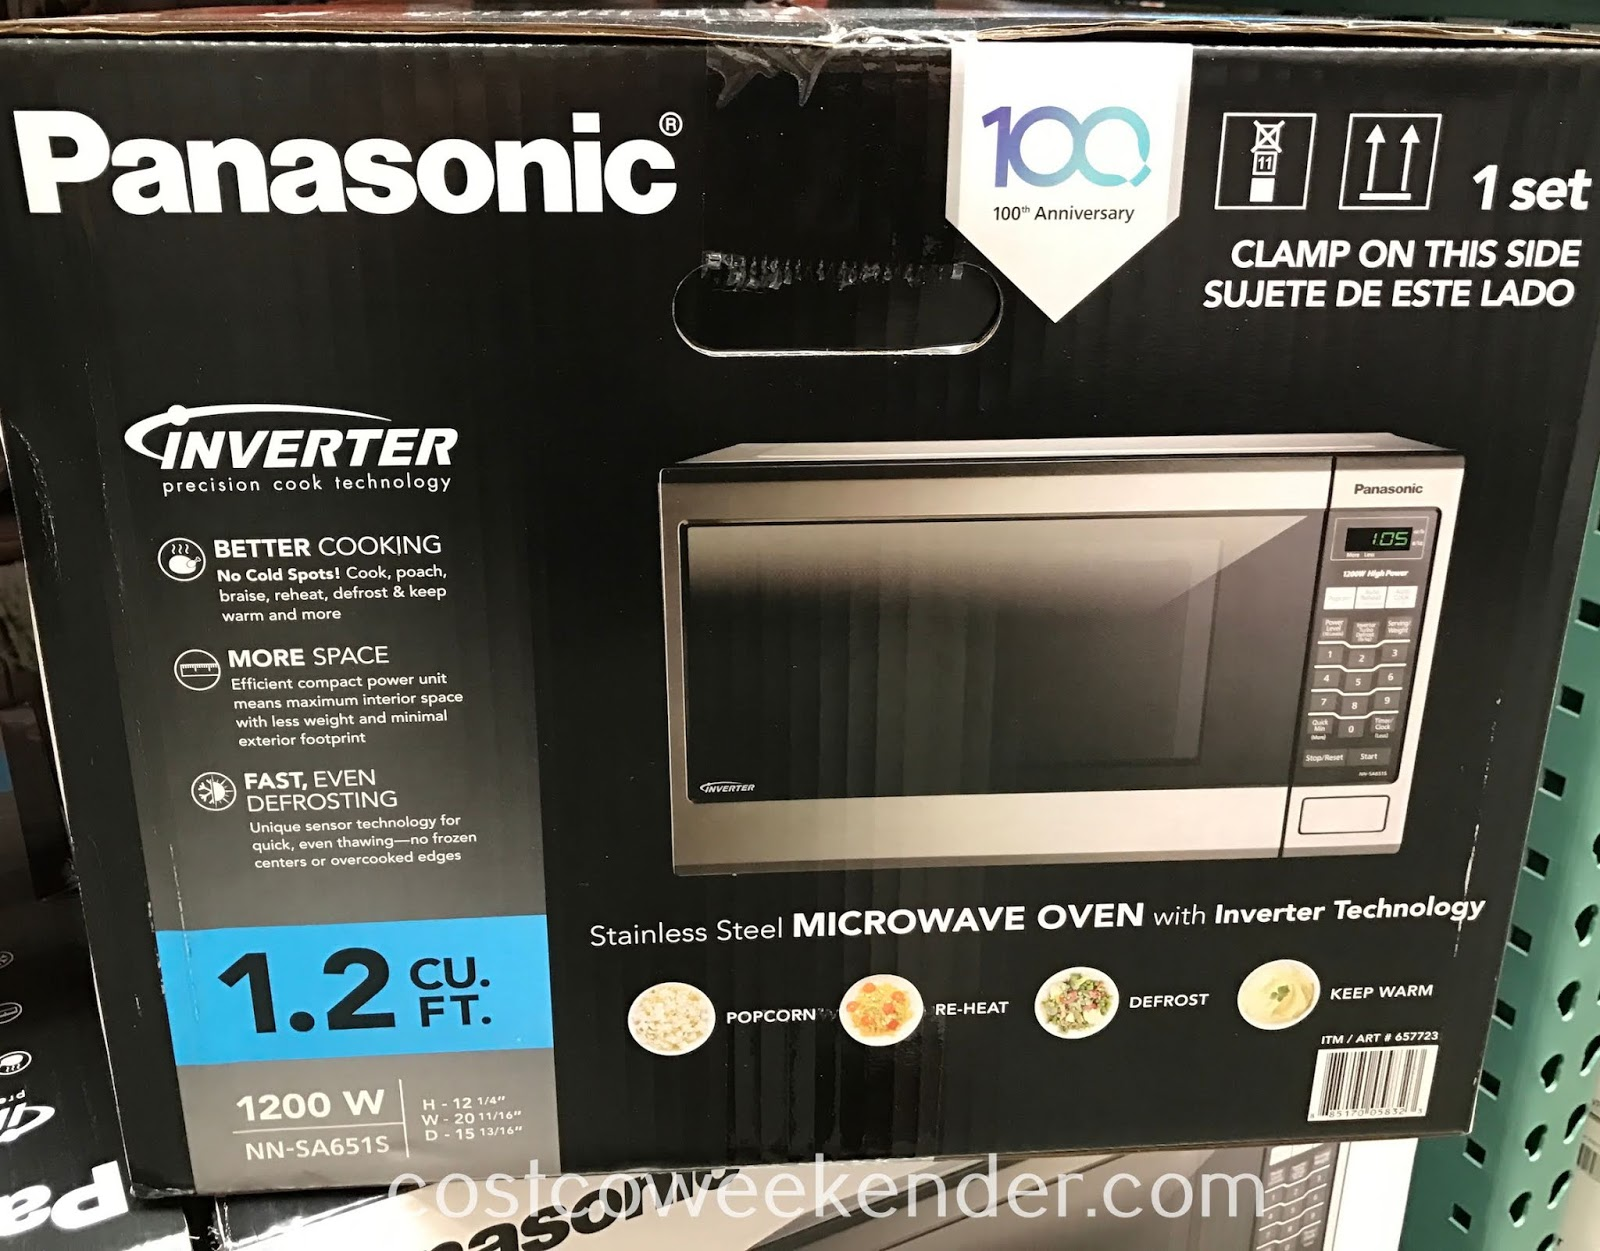 Panasonic Stainless Steel Microwave Oven (NN-SA651S): great for any kitchen